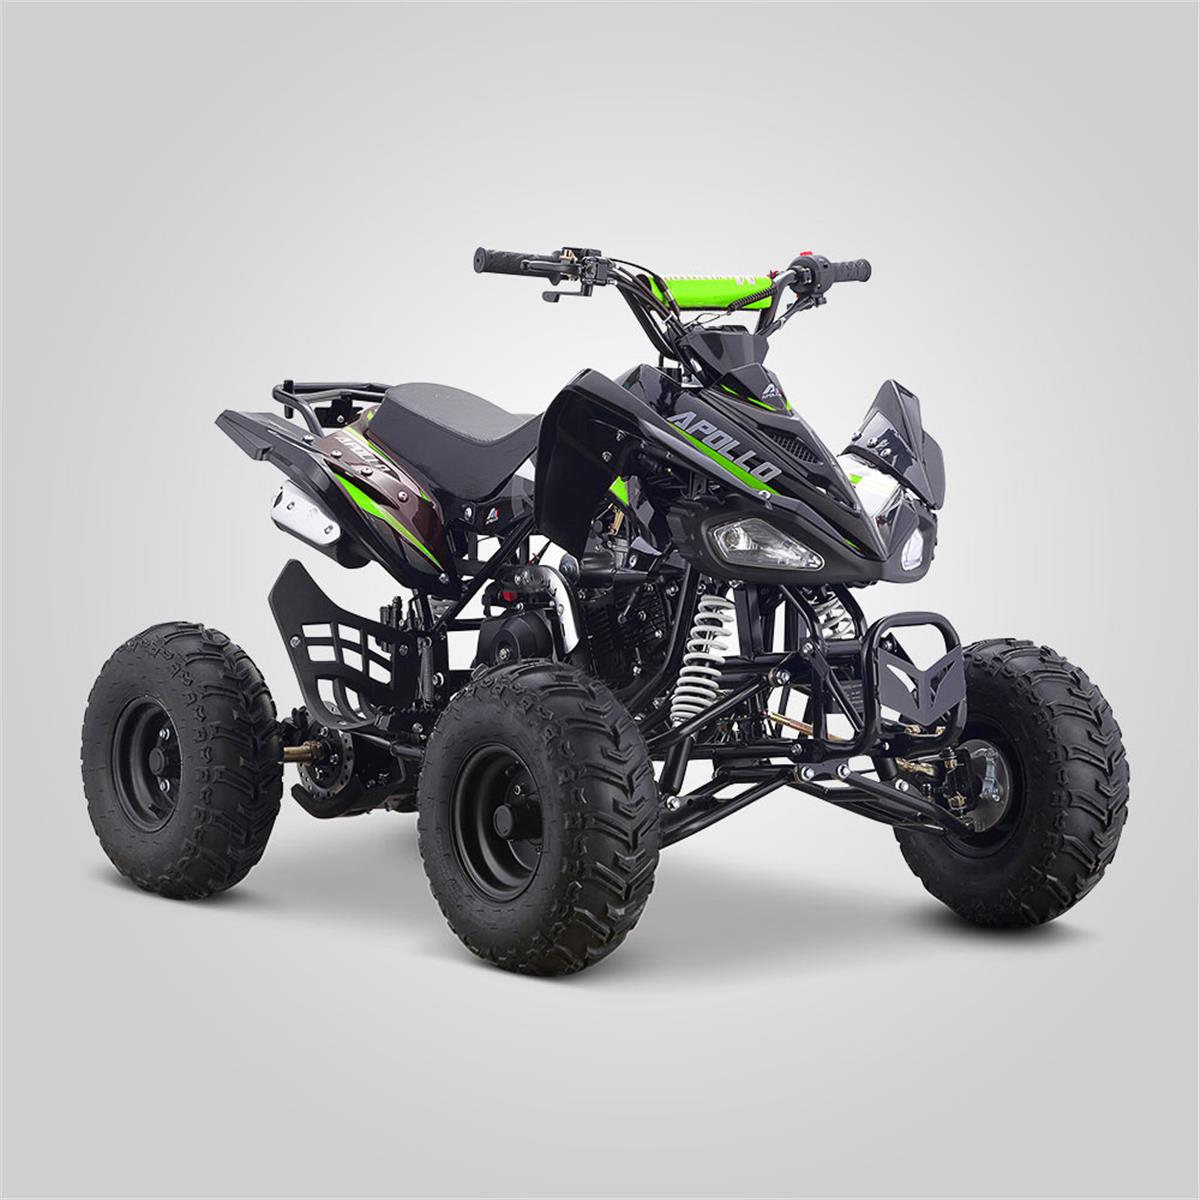 quad enfant 110cc hurricane vert apollo motors smallmx dirt bike pit bike quads minimoto. Black Bedroom Furniture Sets. Home Design Ideas